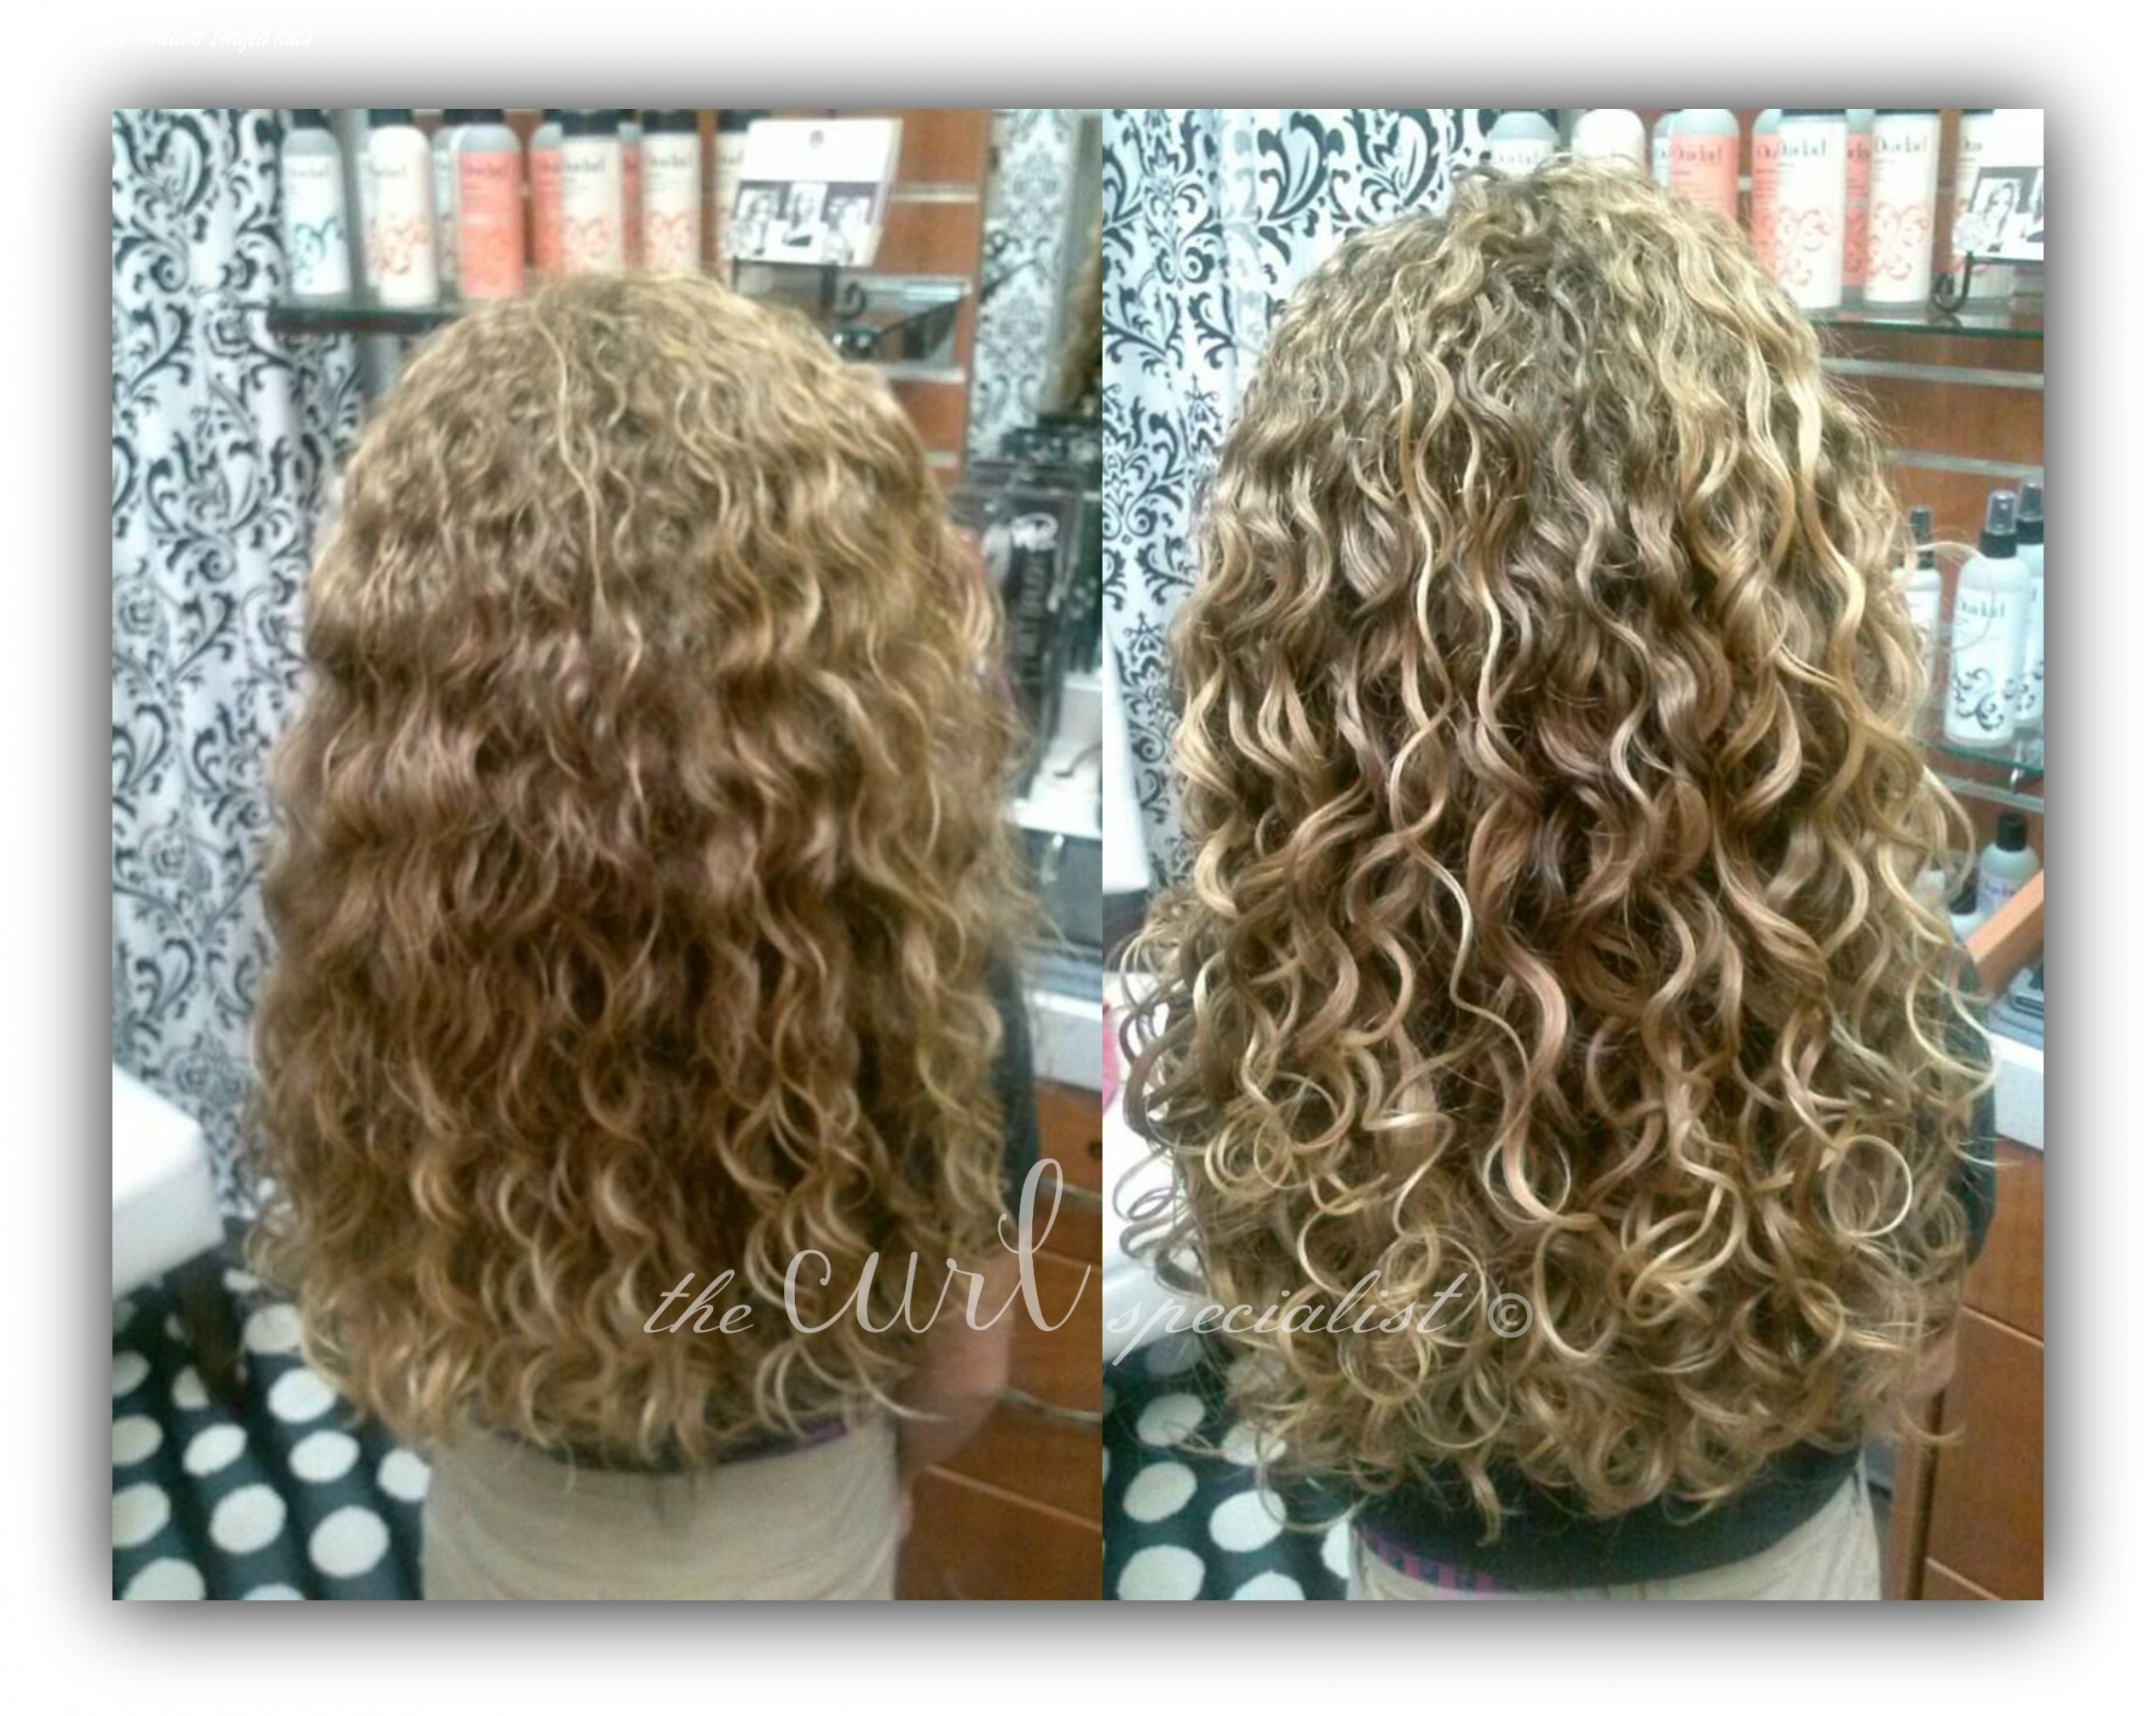 Spiral perm hairstyle awesome pin by copper on curly hair pictures spiral perm medium length hair